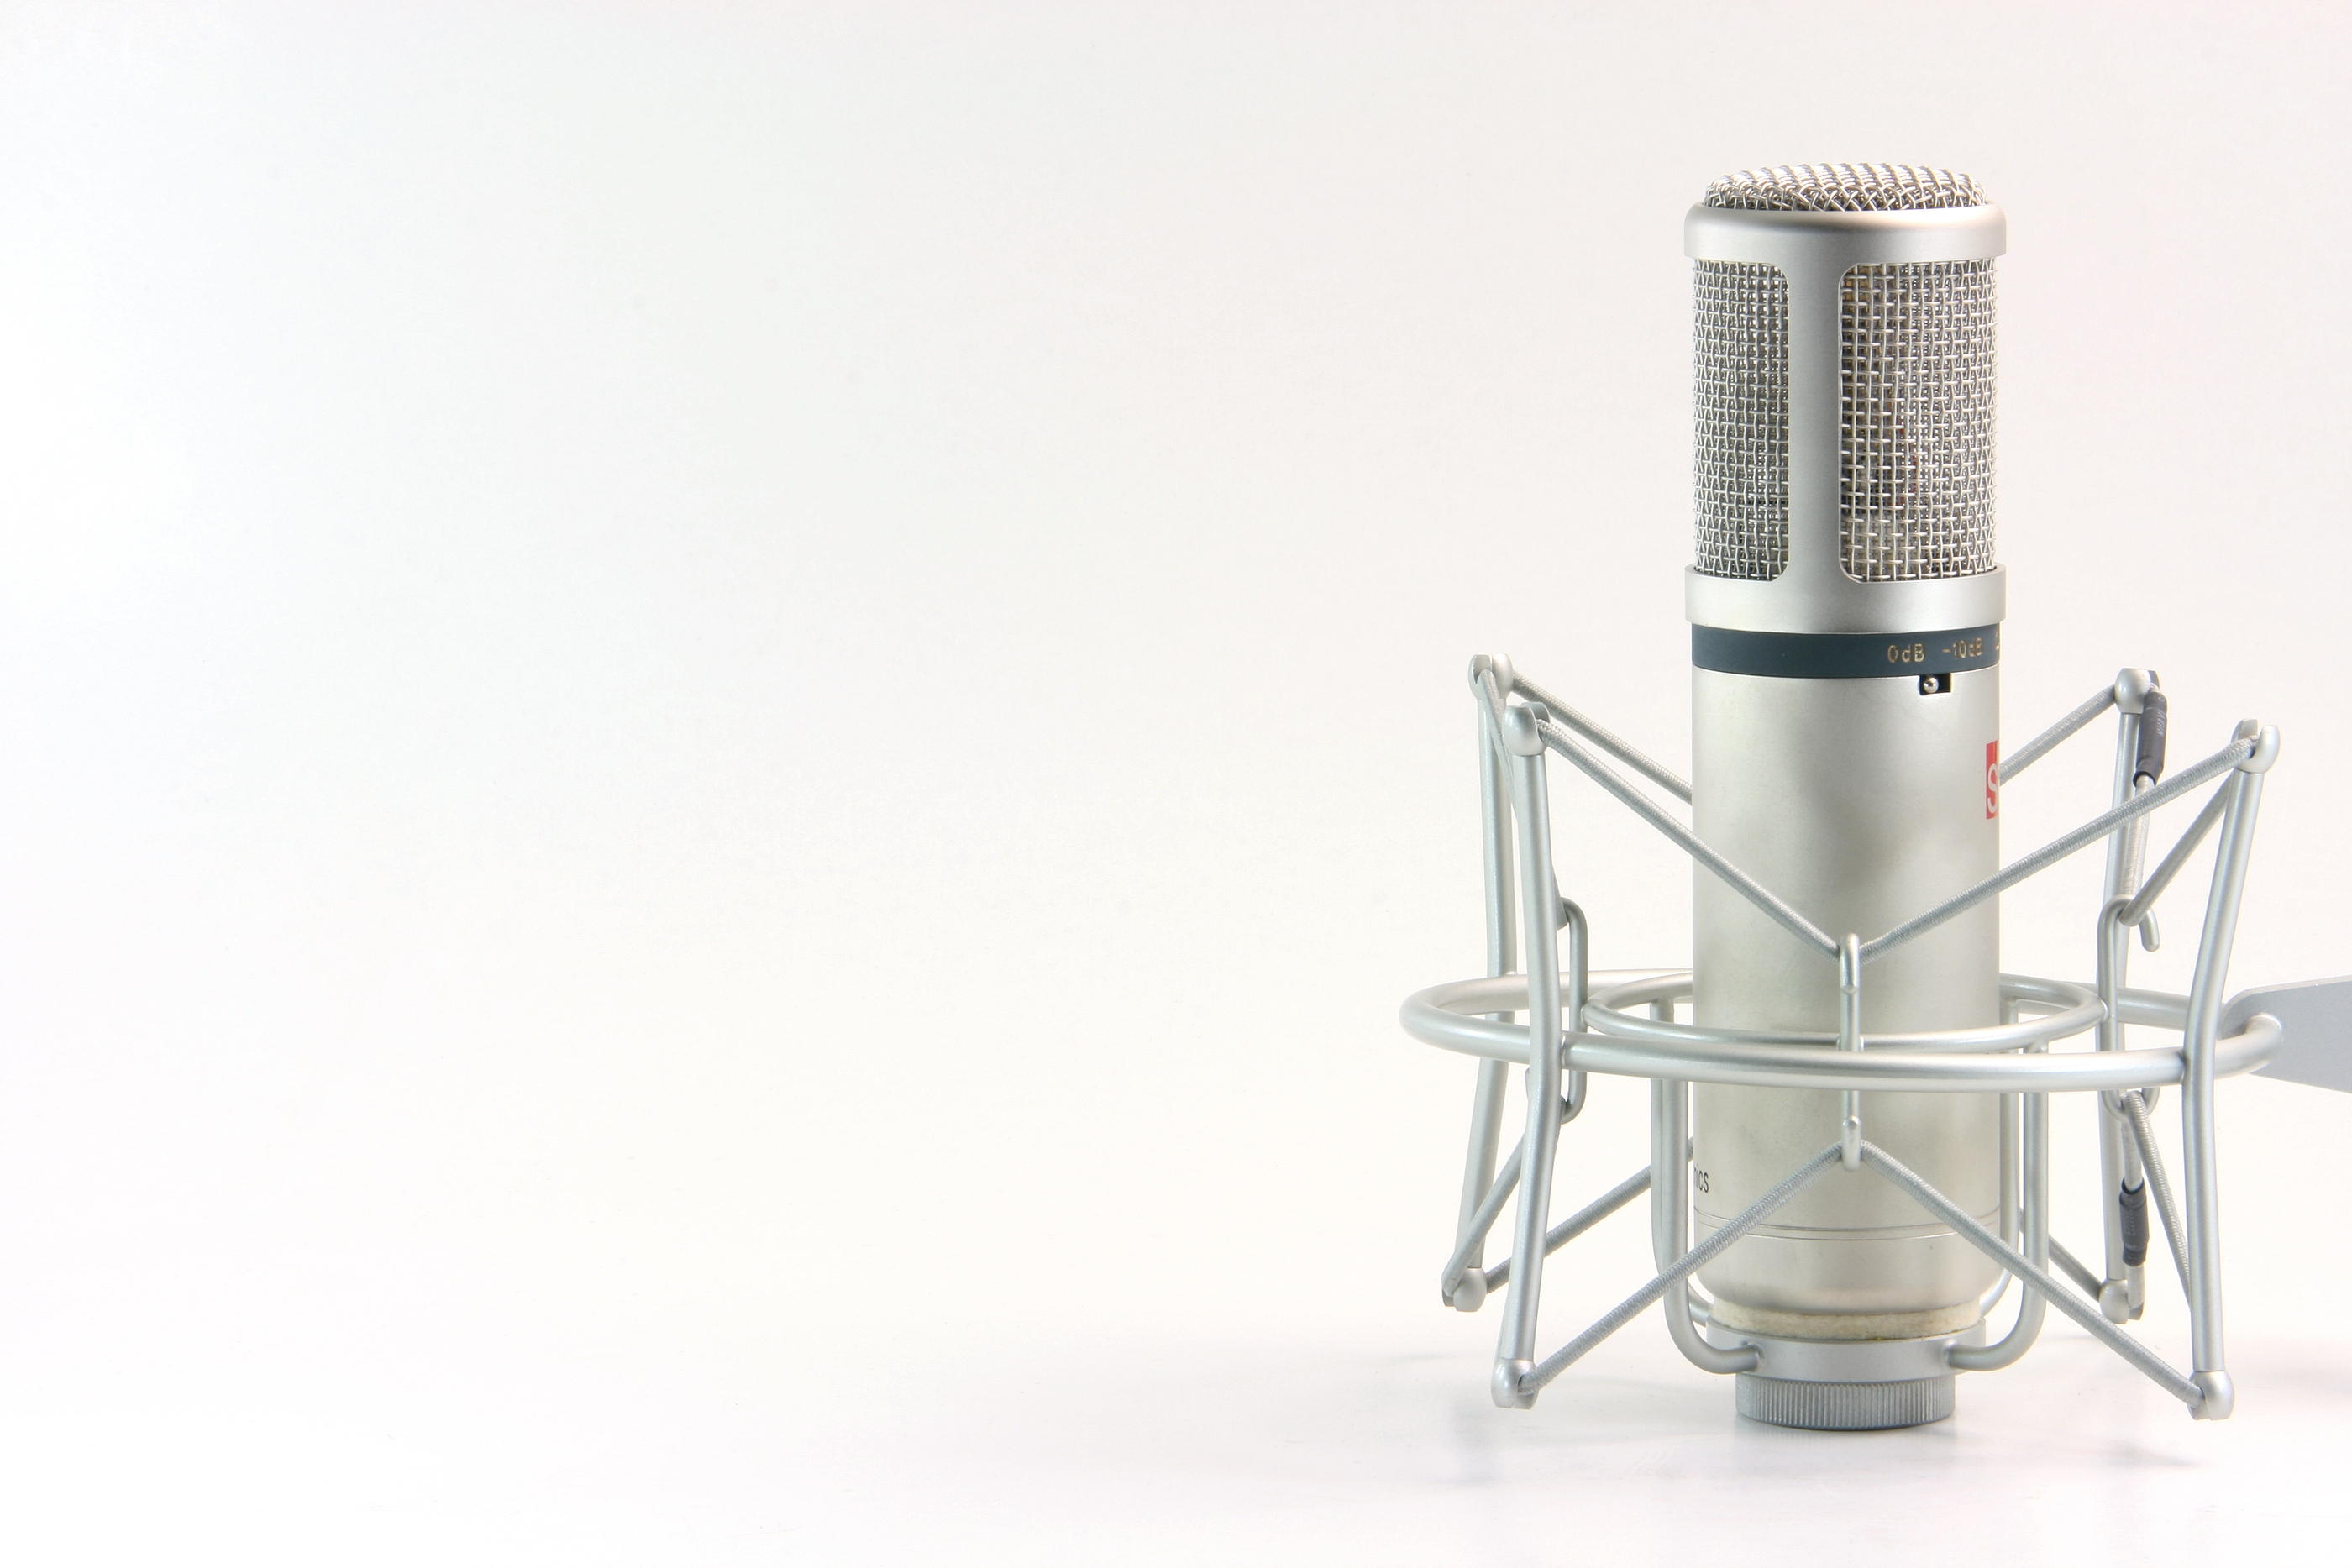 bigstock-Isolated-Microphone-2432326 Why your business should be involved with podcasts